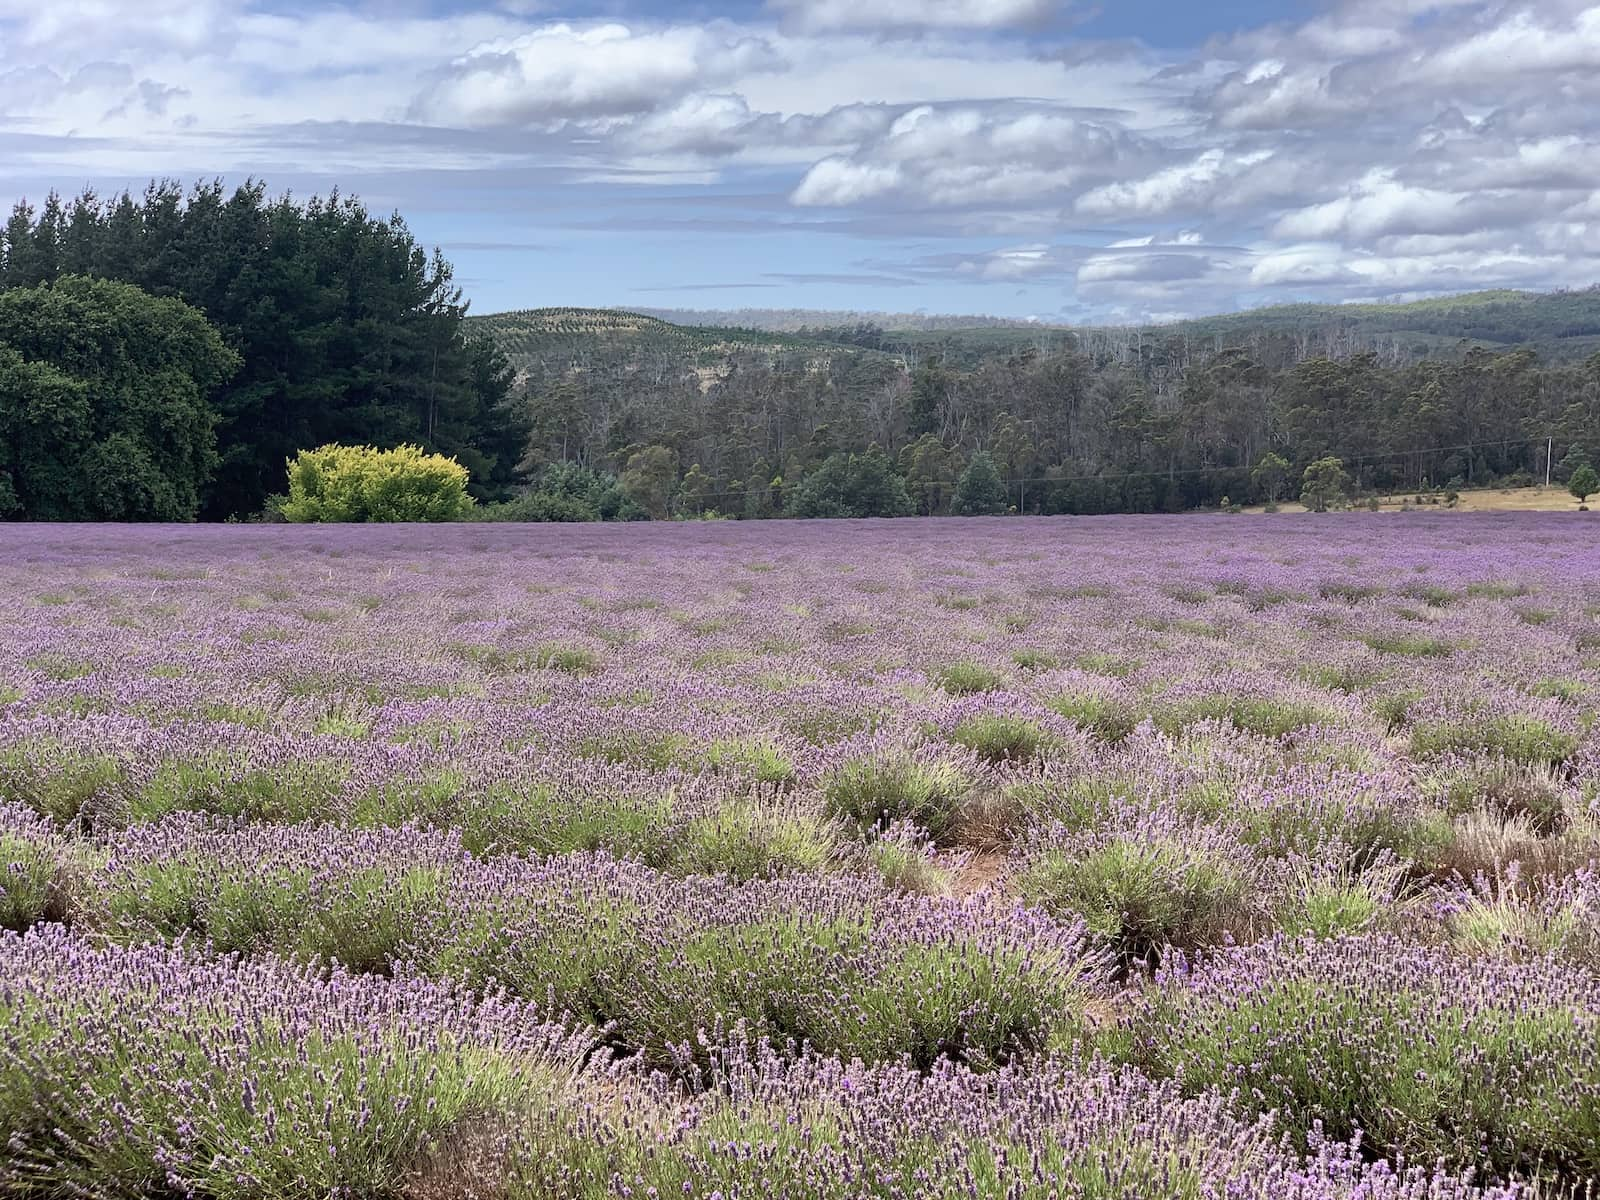 Another view of the lavender fields from previous photos, but photographed to all appear more closely planted